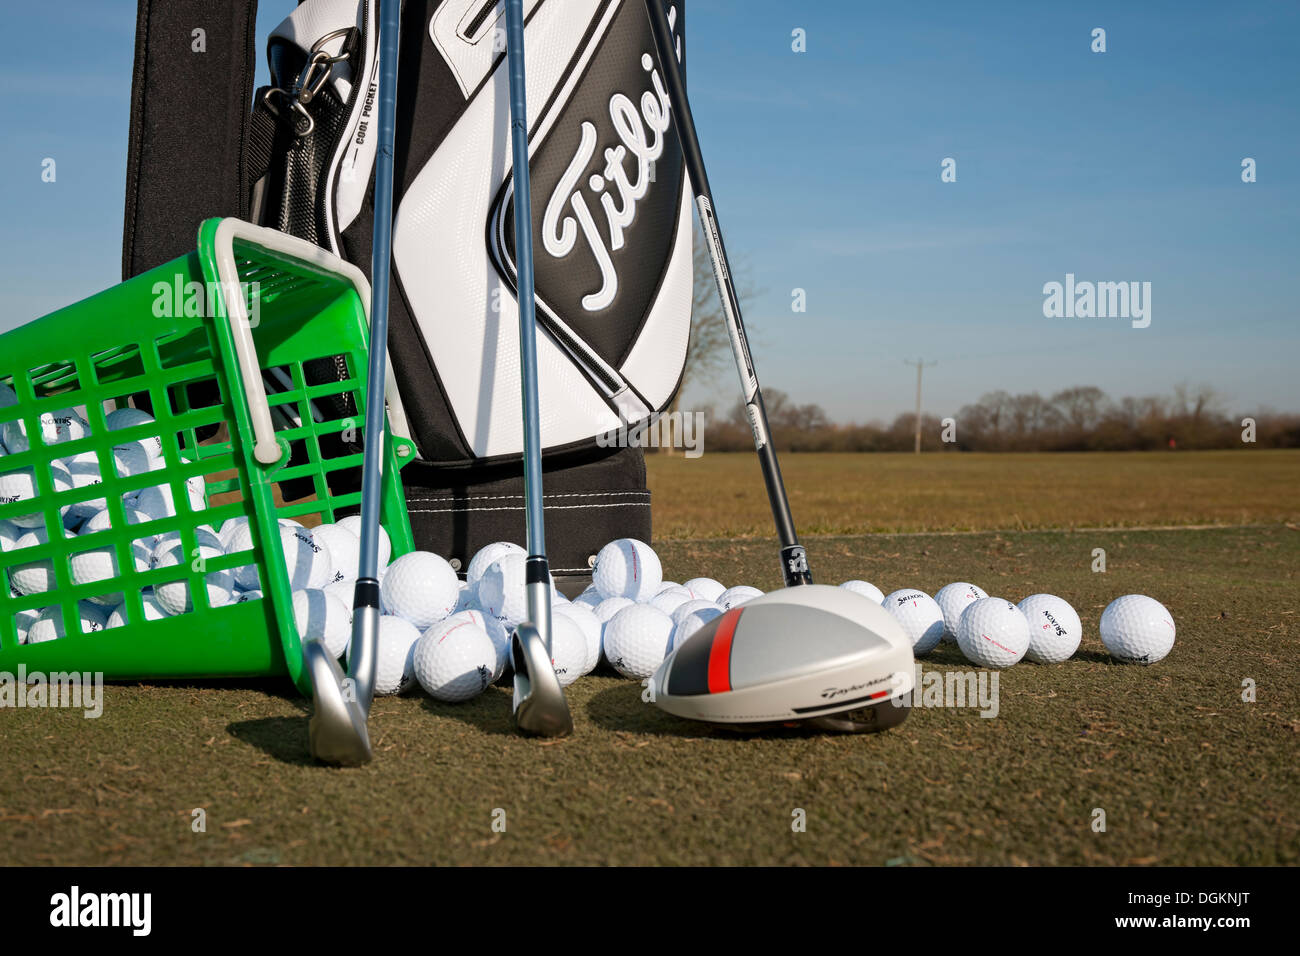 Golf clubs and golf balls on a driving range. Stock Photo